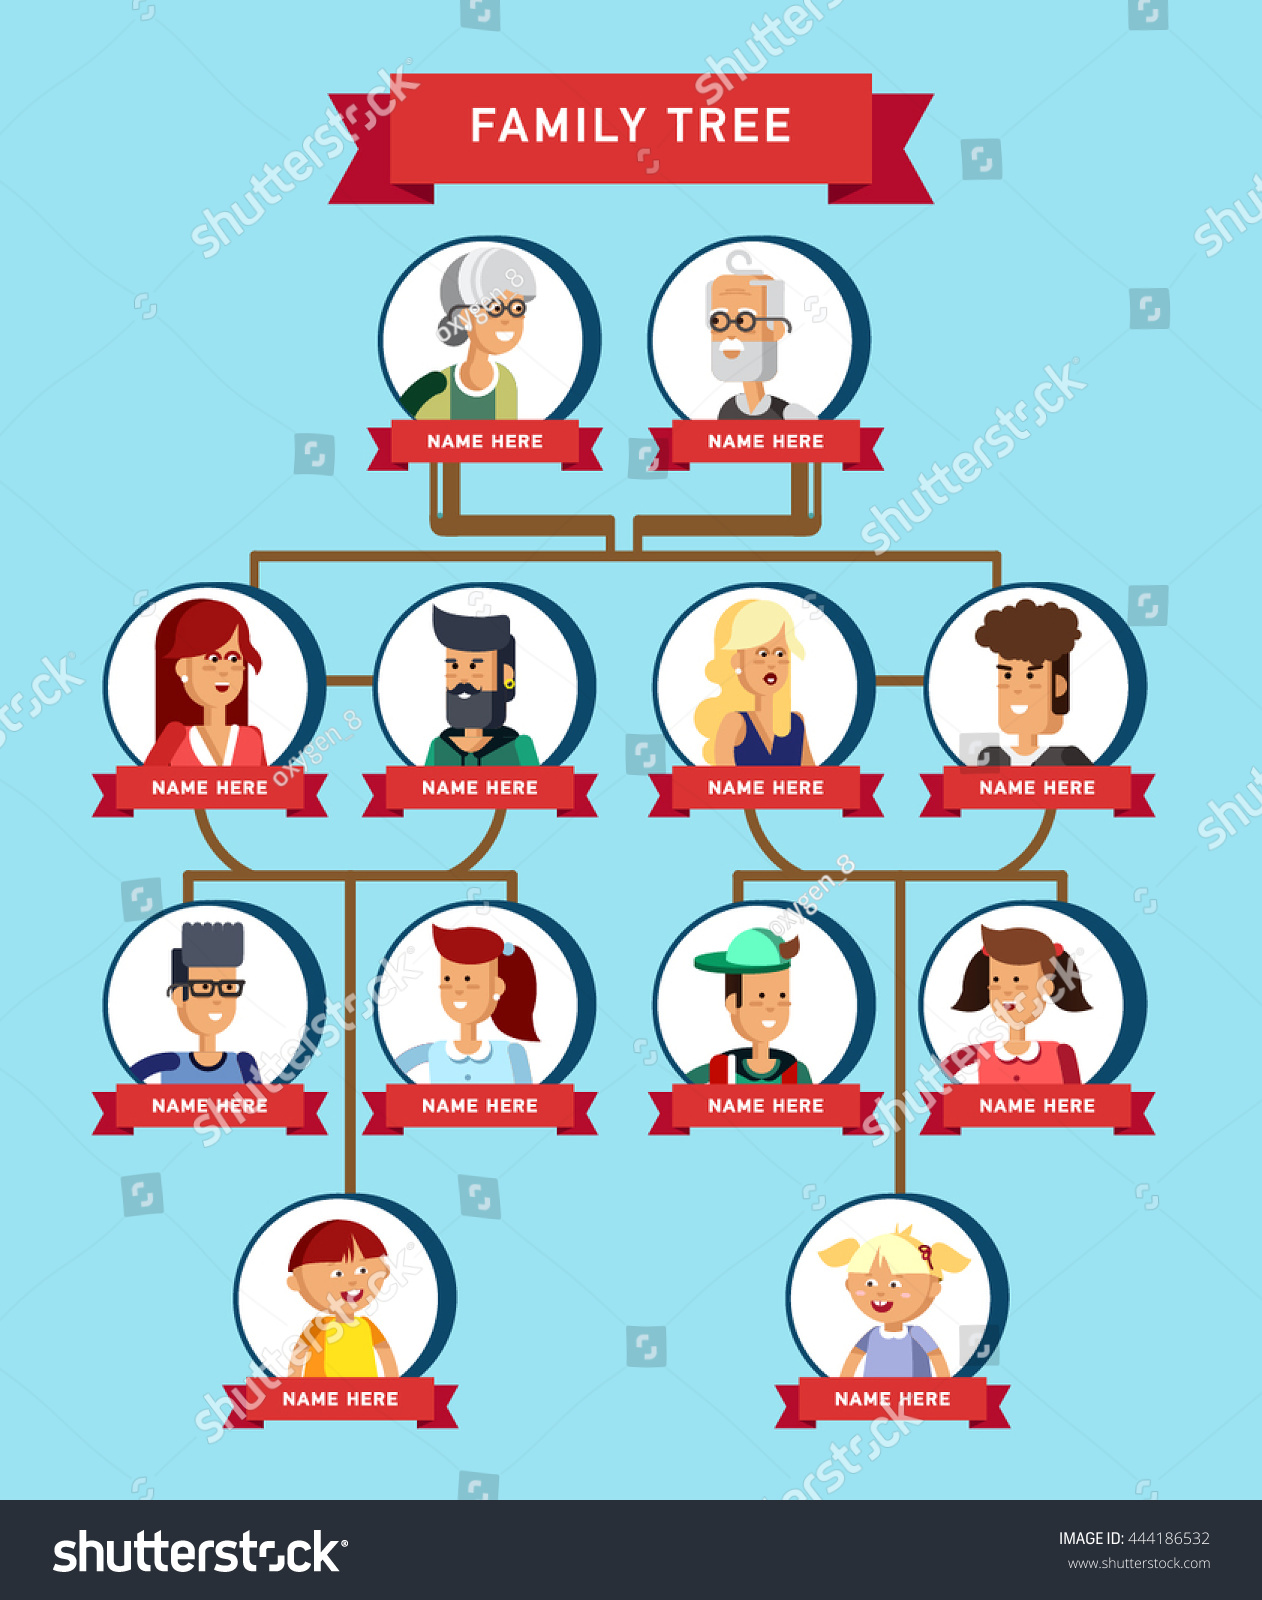 Family Tree Generation Illustratuion People Faces Stock Vector